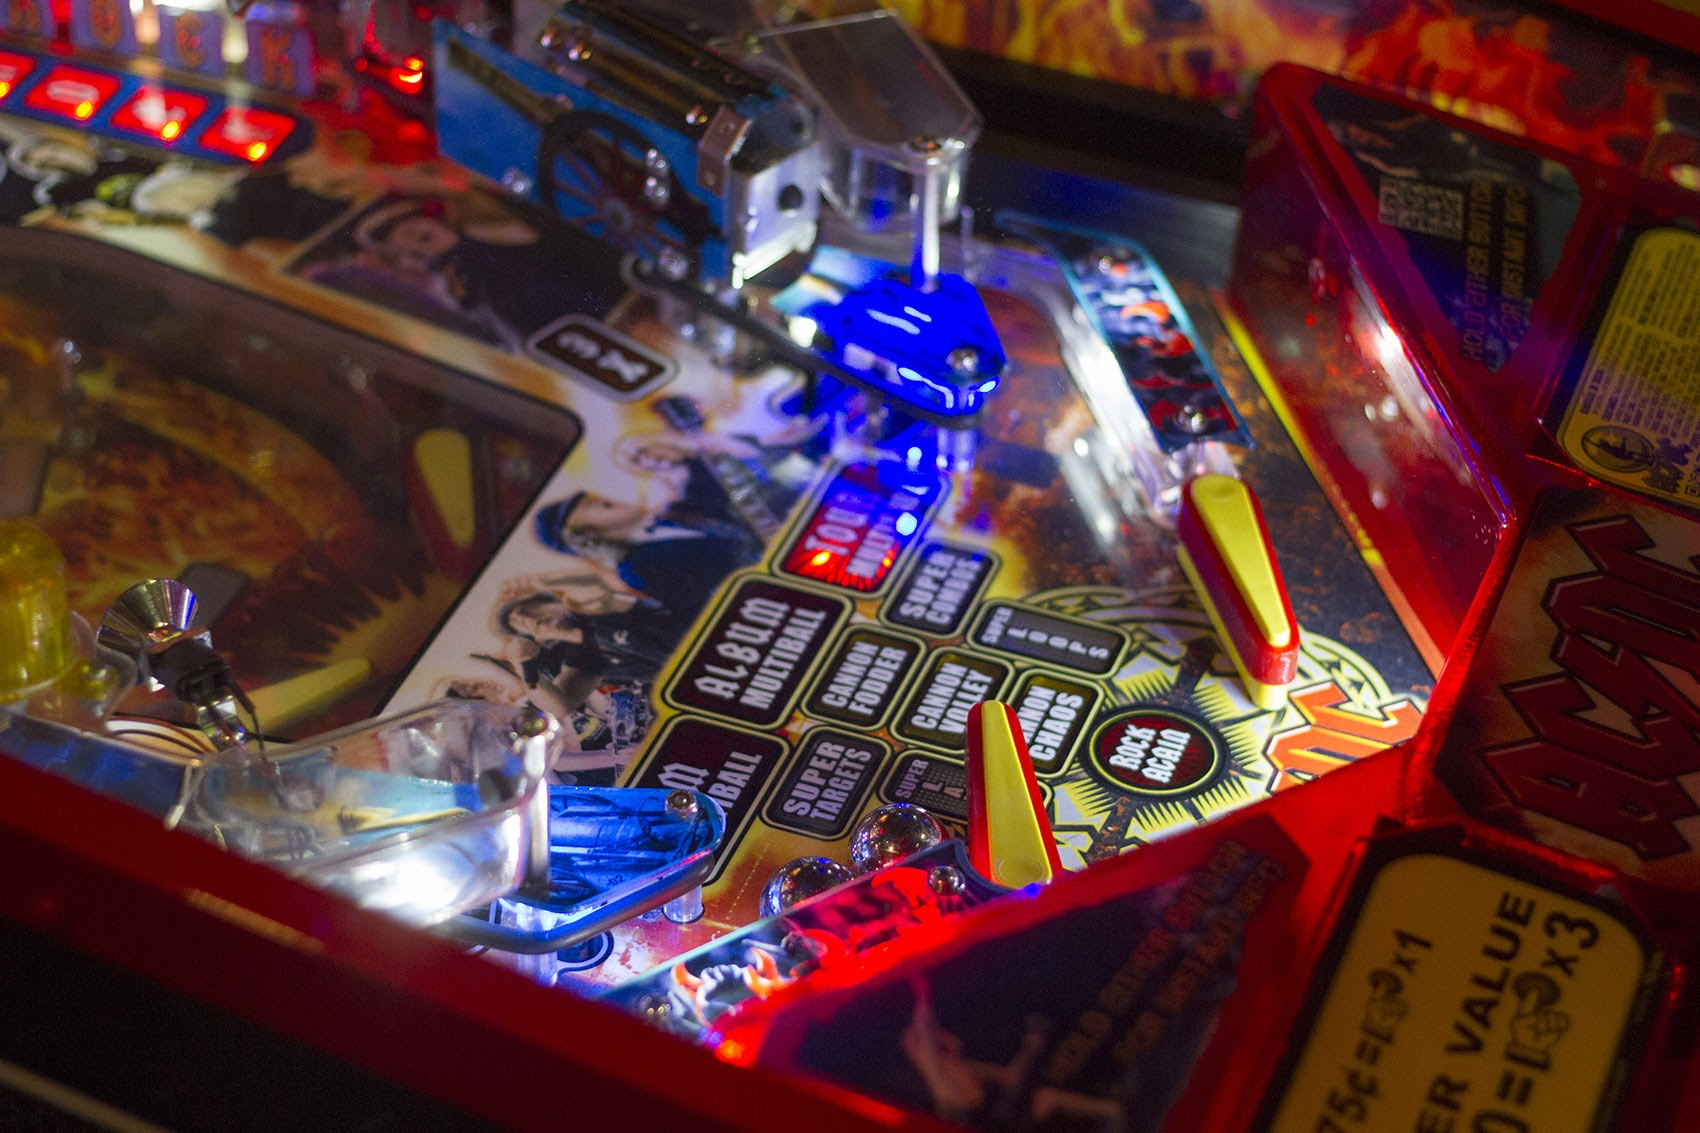 AC/DC pinball machine. (Joe Difazio for WBUR)